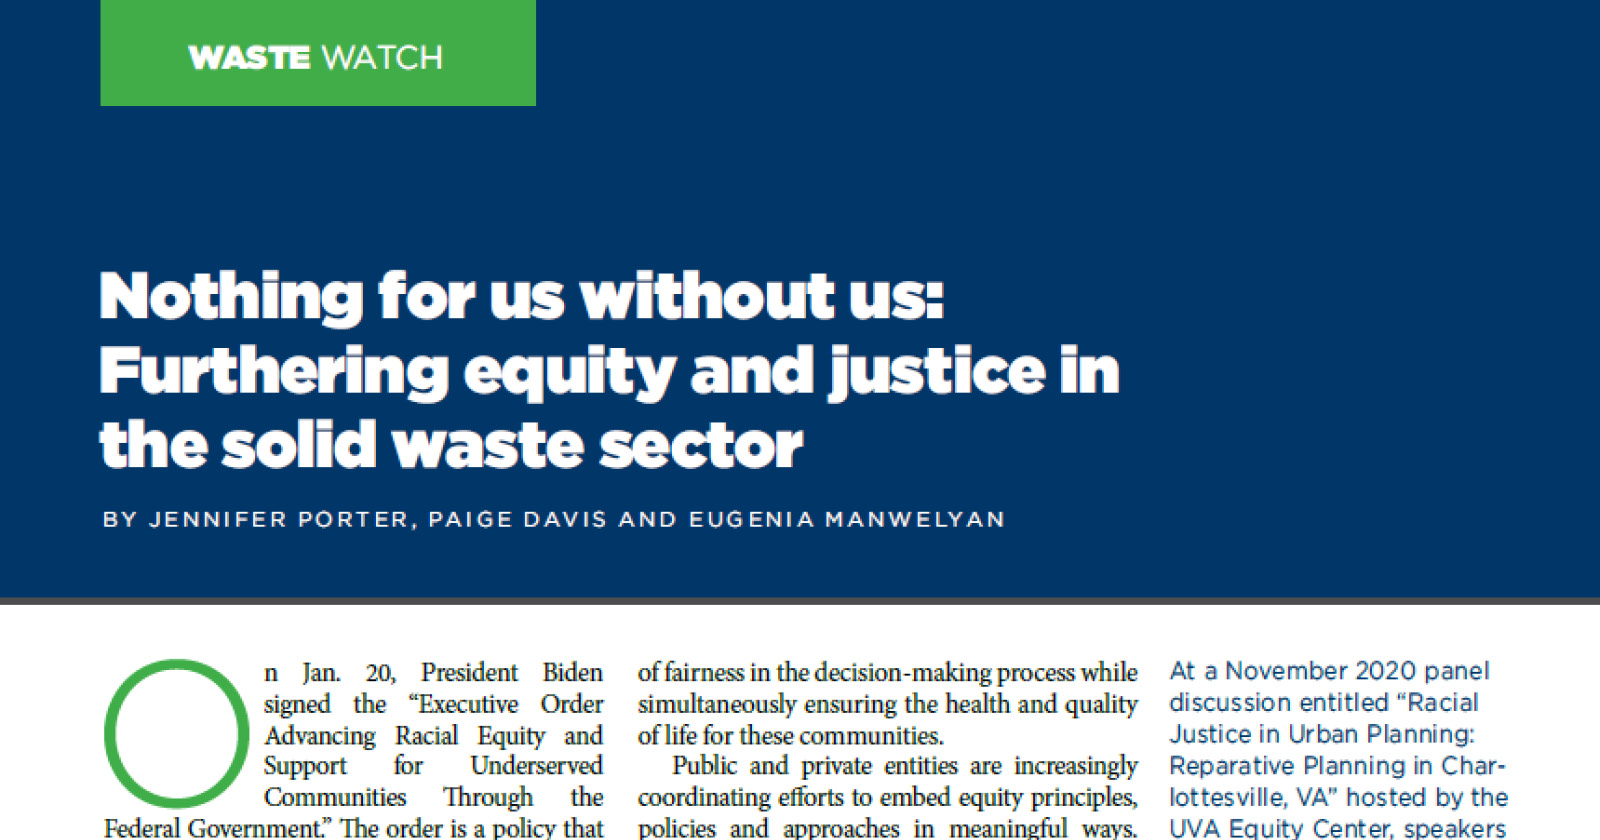 Furthering Equity and Justice in the Solid Waste Sector